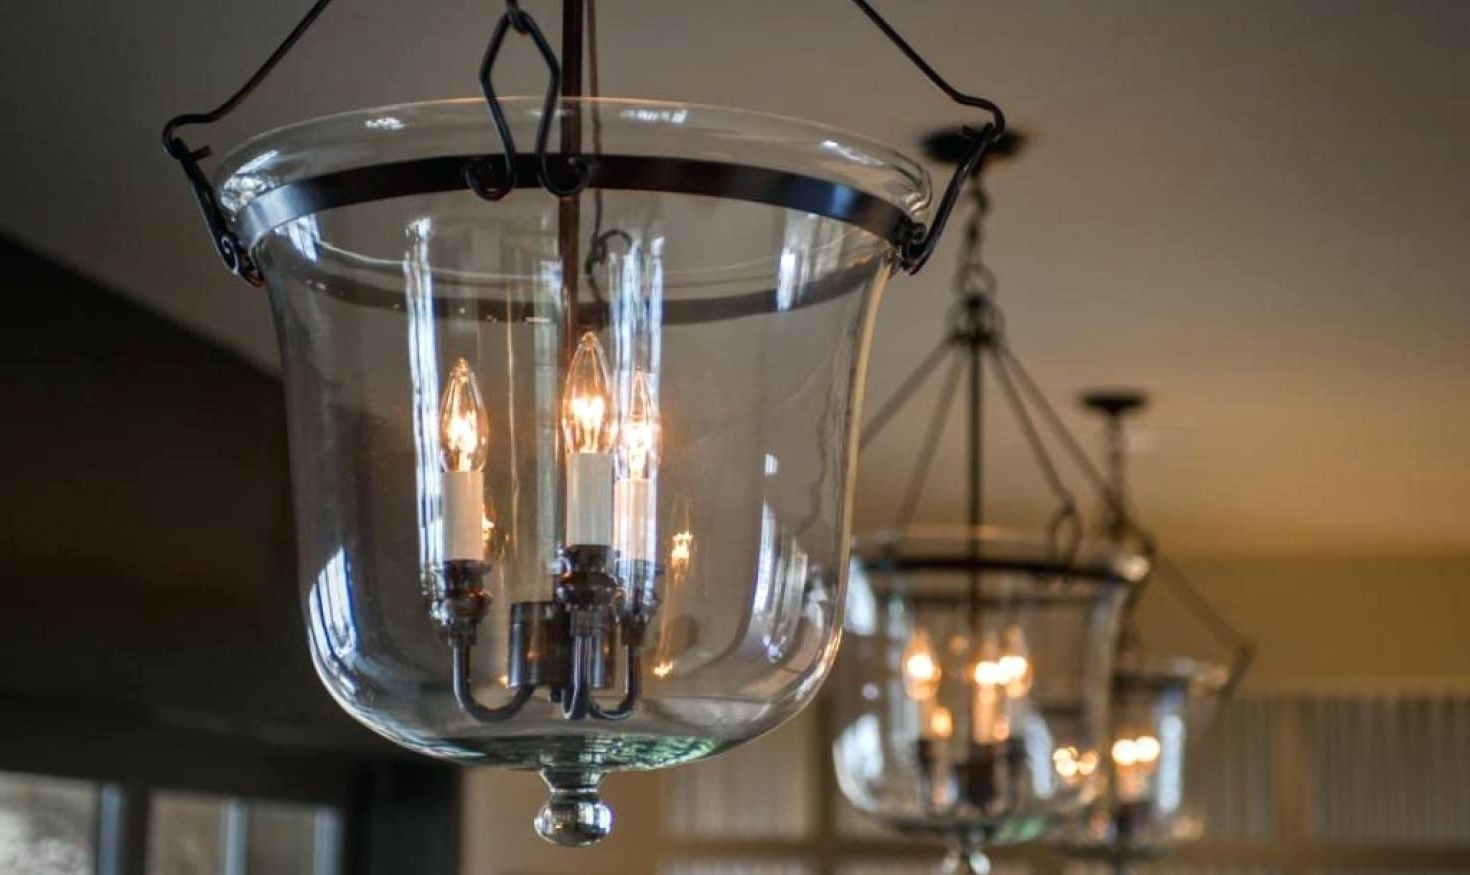 Most Current Contemporary Modern Chandelier Throughout Decoration: Modern Chandeliers For High Ceilings (View 10 of 20)